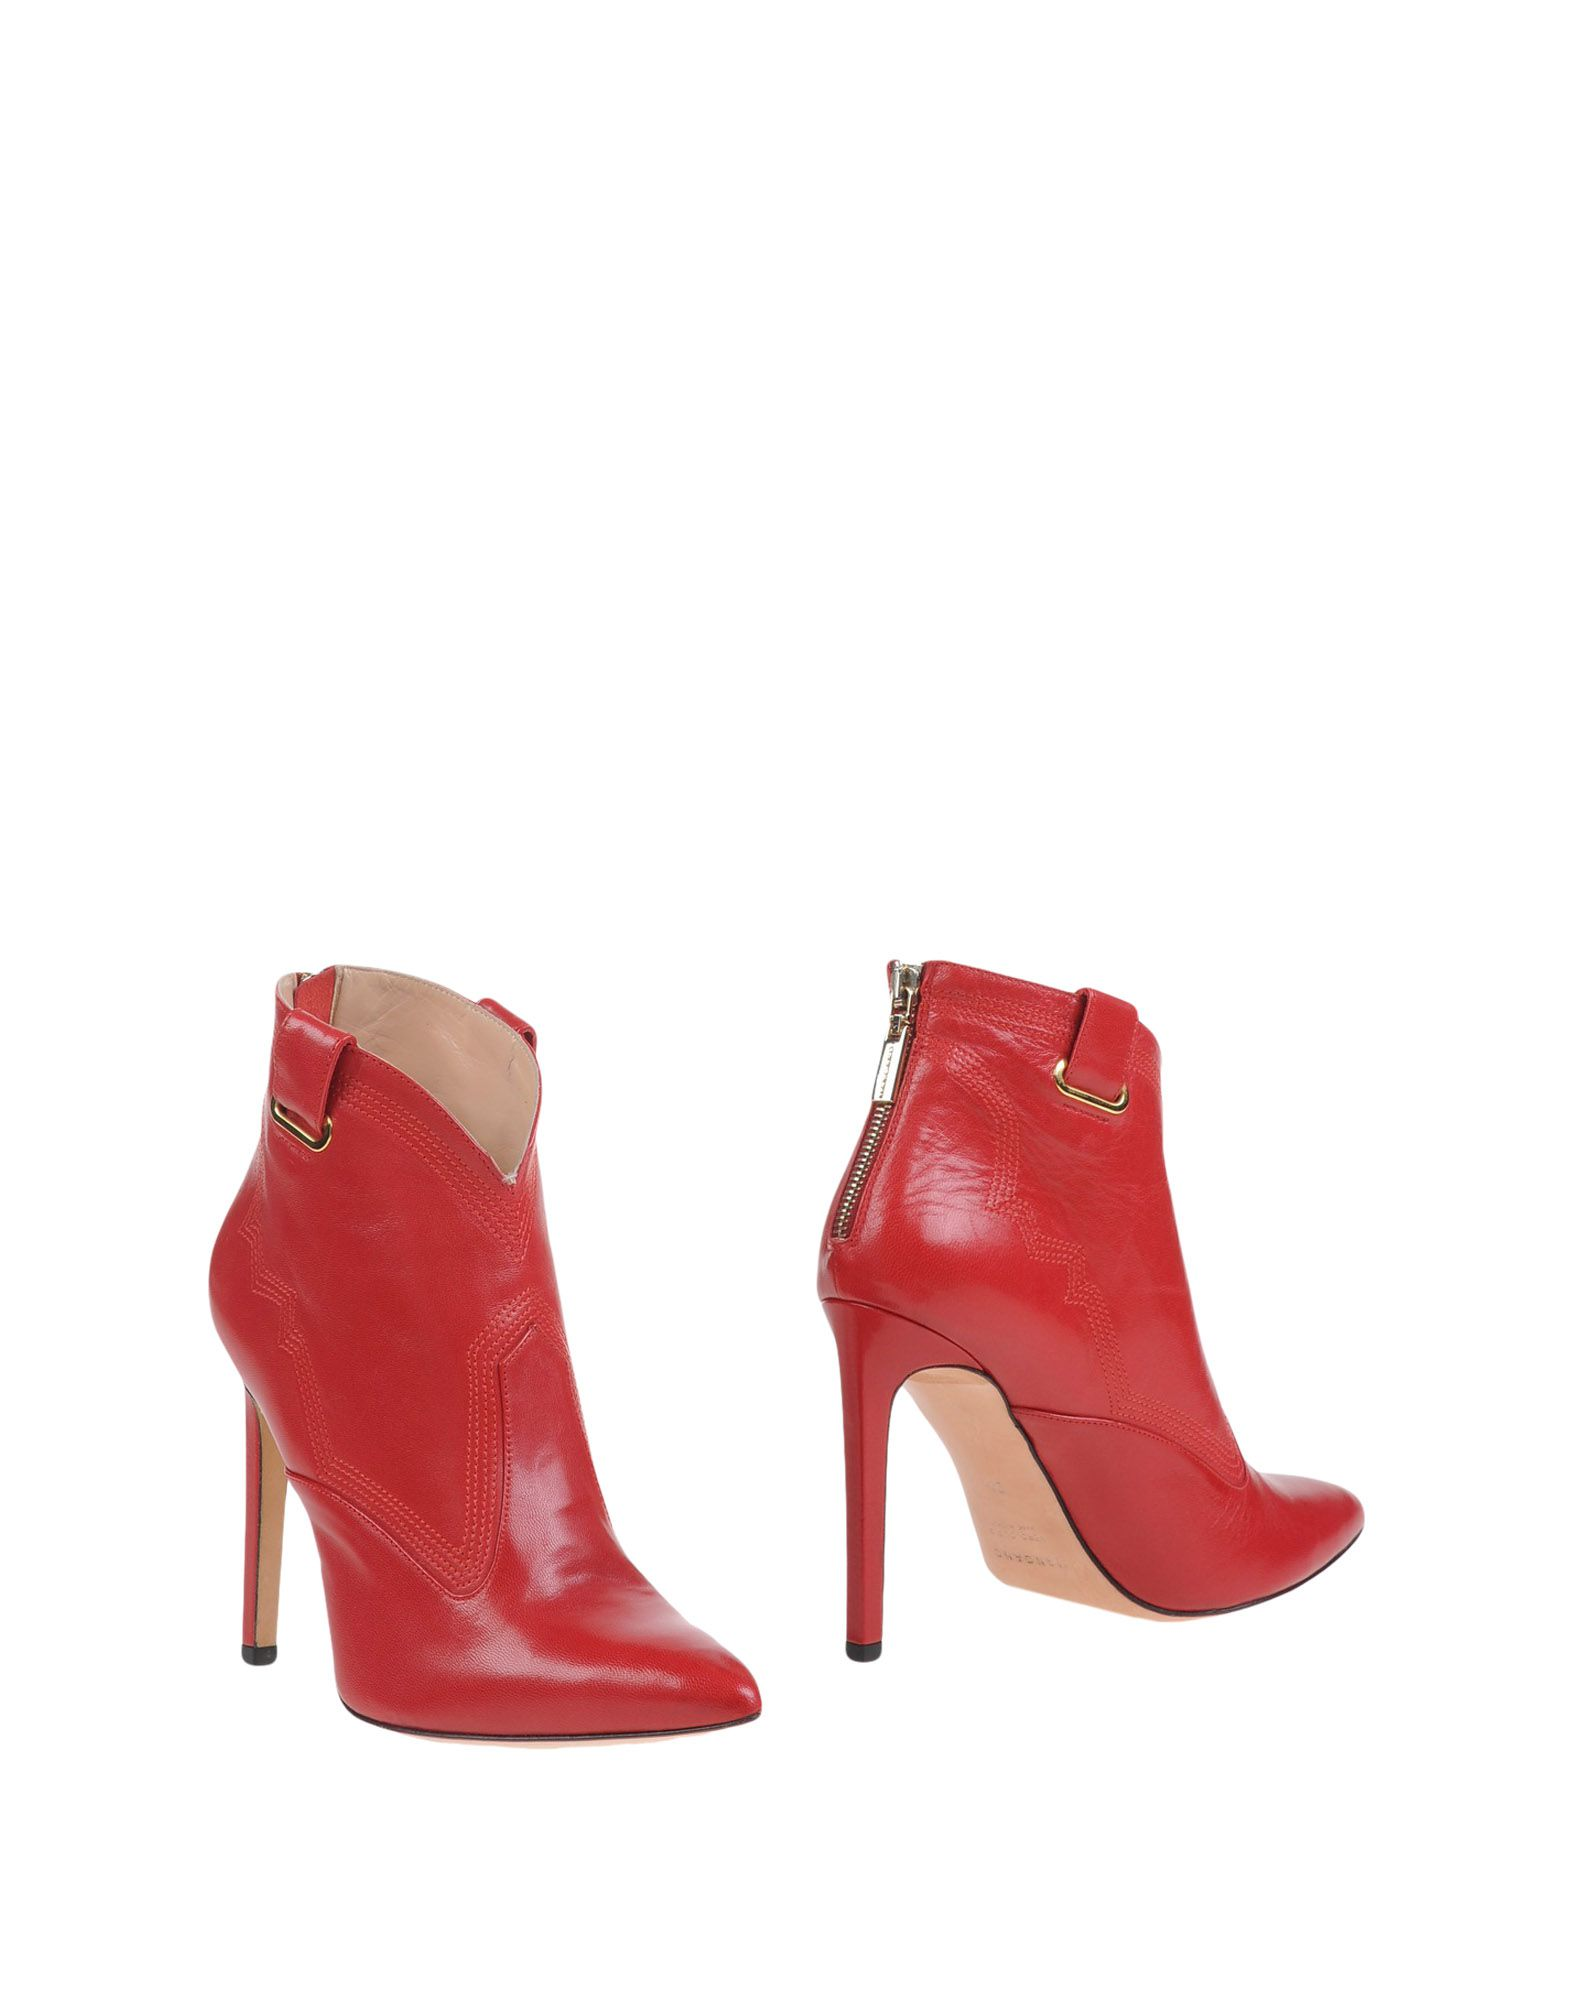 Mangano Ankle Boot Boots - Women Mangano Ankle Boots Boot online on  Canada - 11083182BO 31cc52